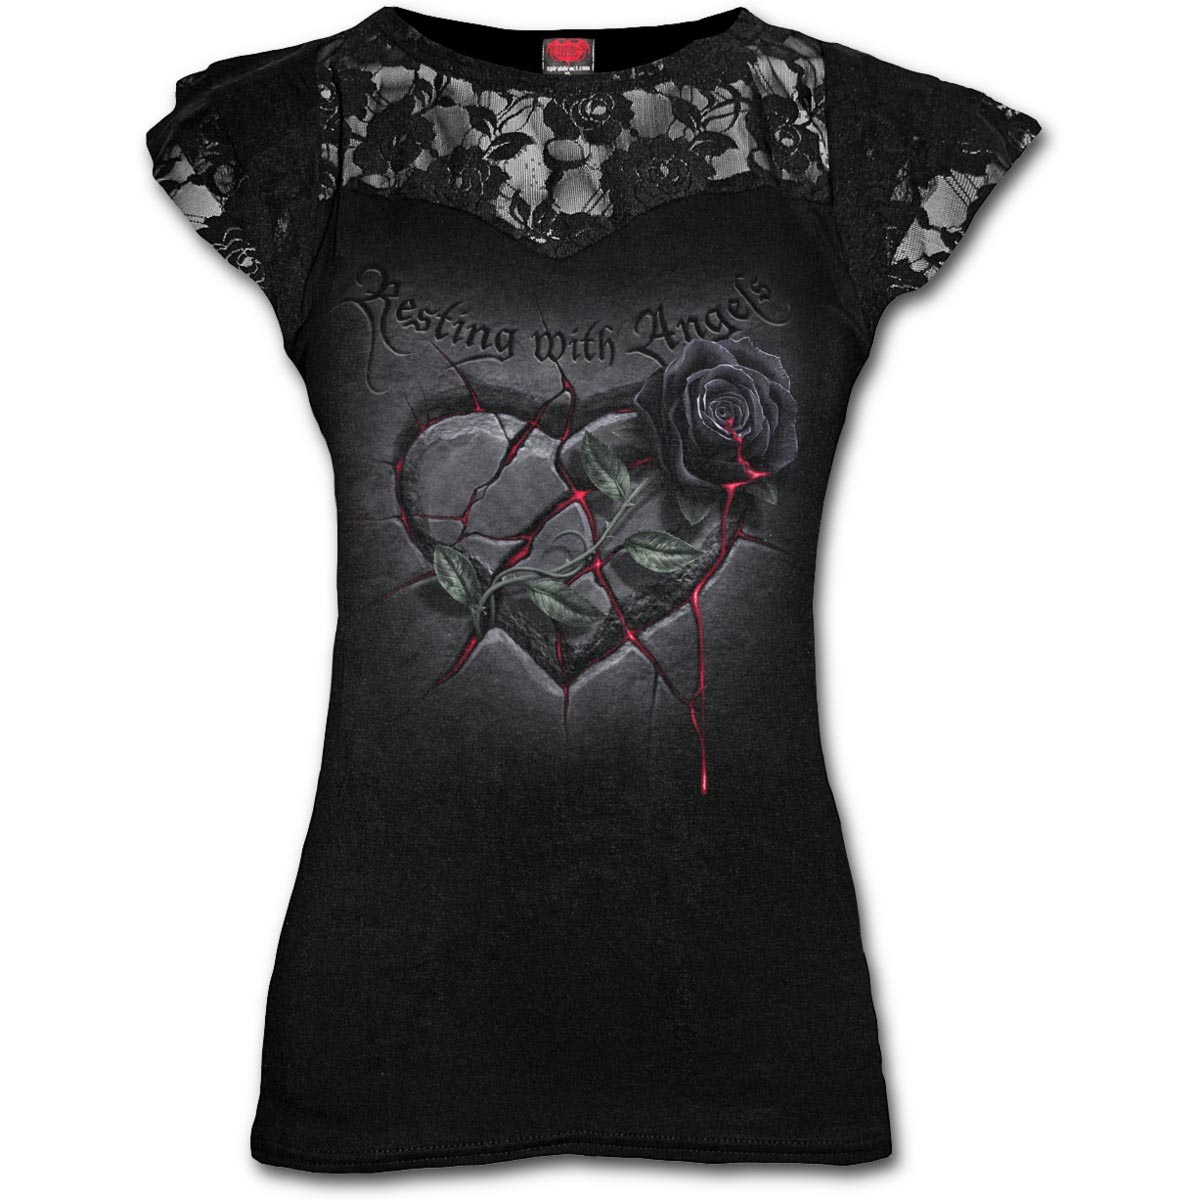 Spiral-Direct-Ladies-Black-Goth-RESTING-With-Angels-Top-Lace-Rose-All-Sizes thumbnail 5